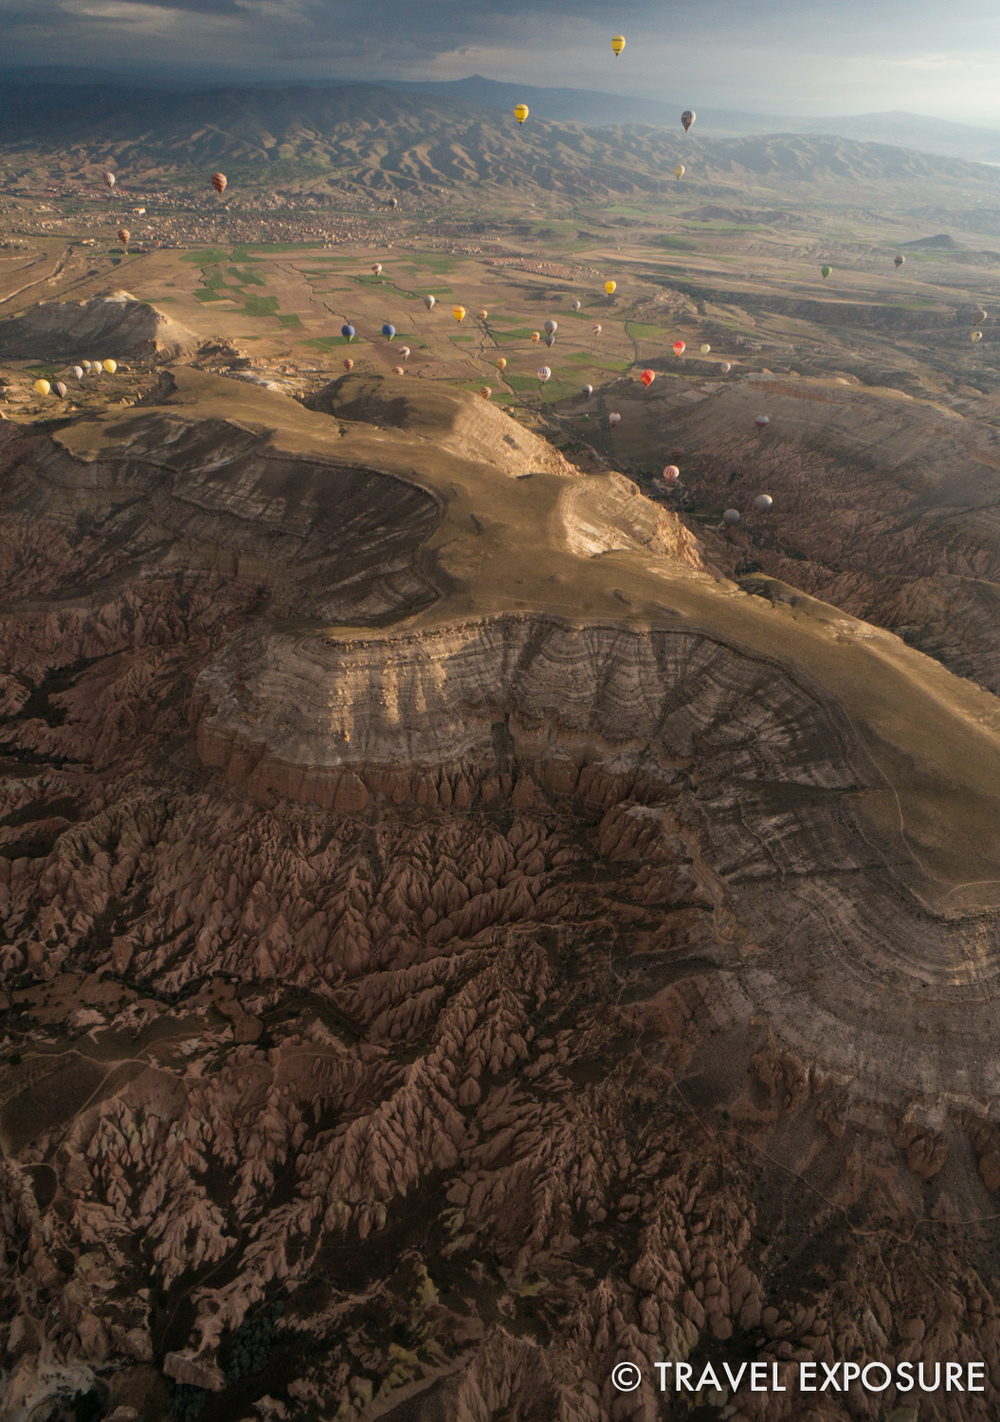 WEEK OF APRIL 28 Looking down at the spectacular landscape at sunrise, from a hot air balloon in Cappadocia, Turkey.